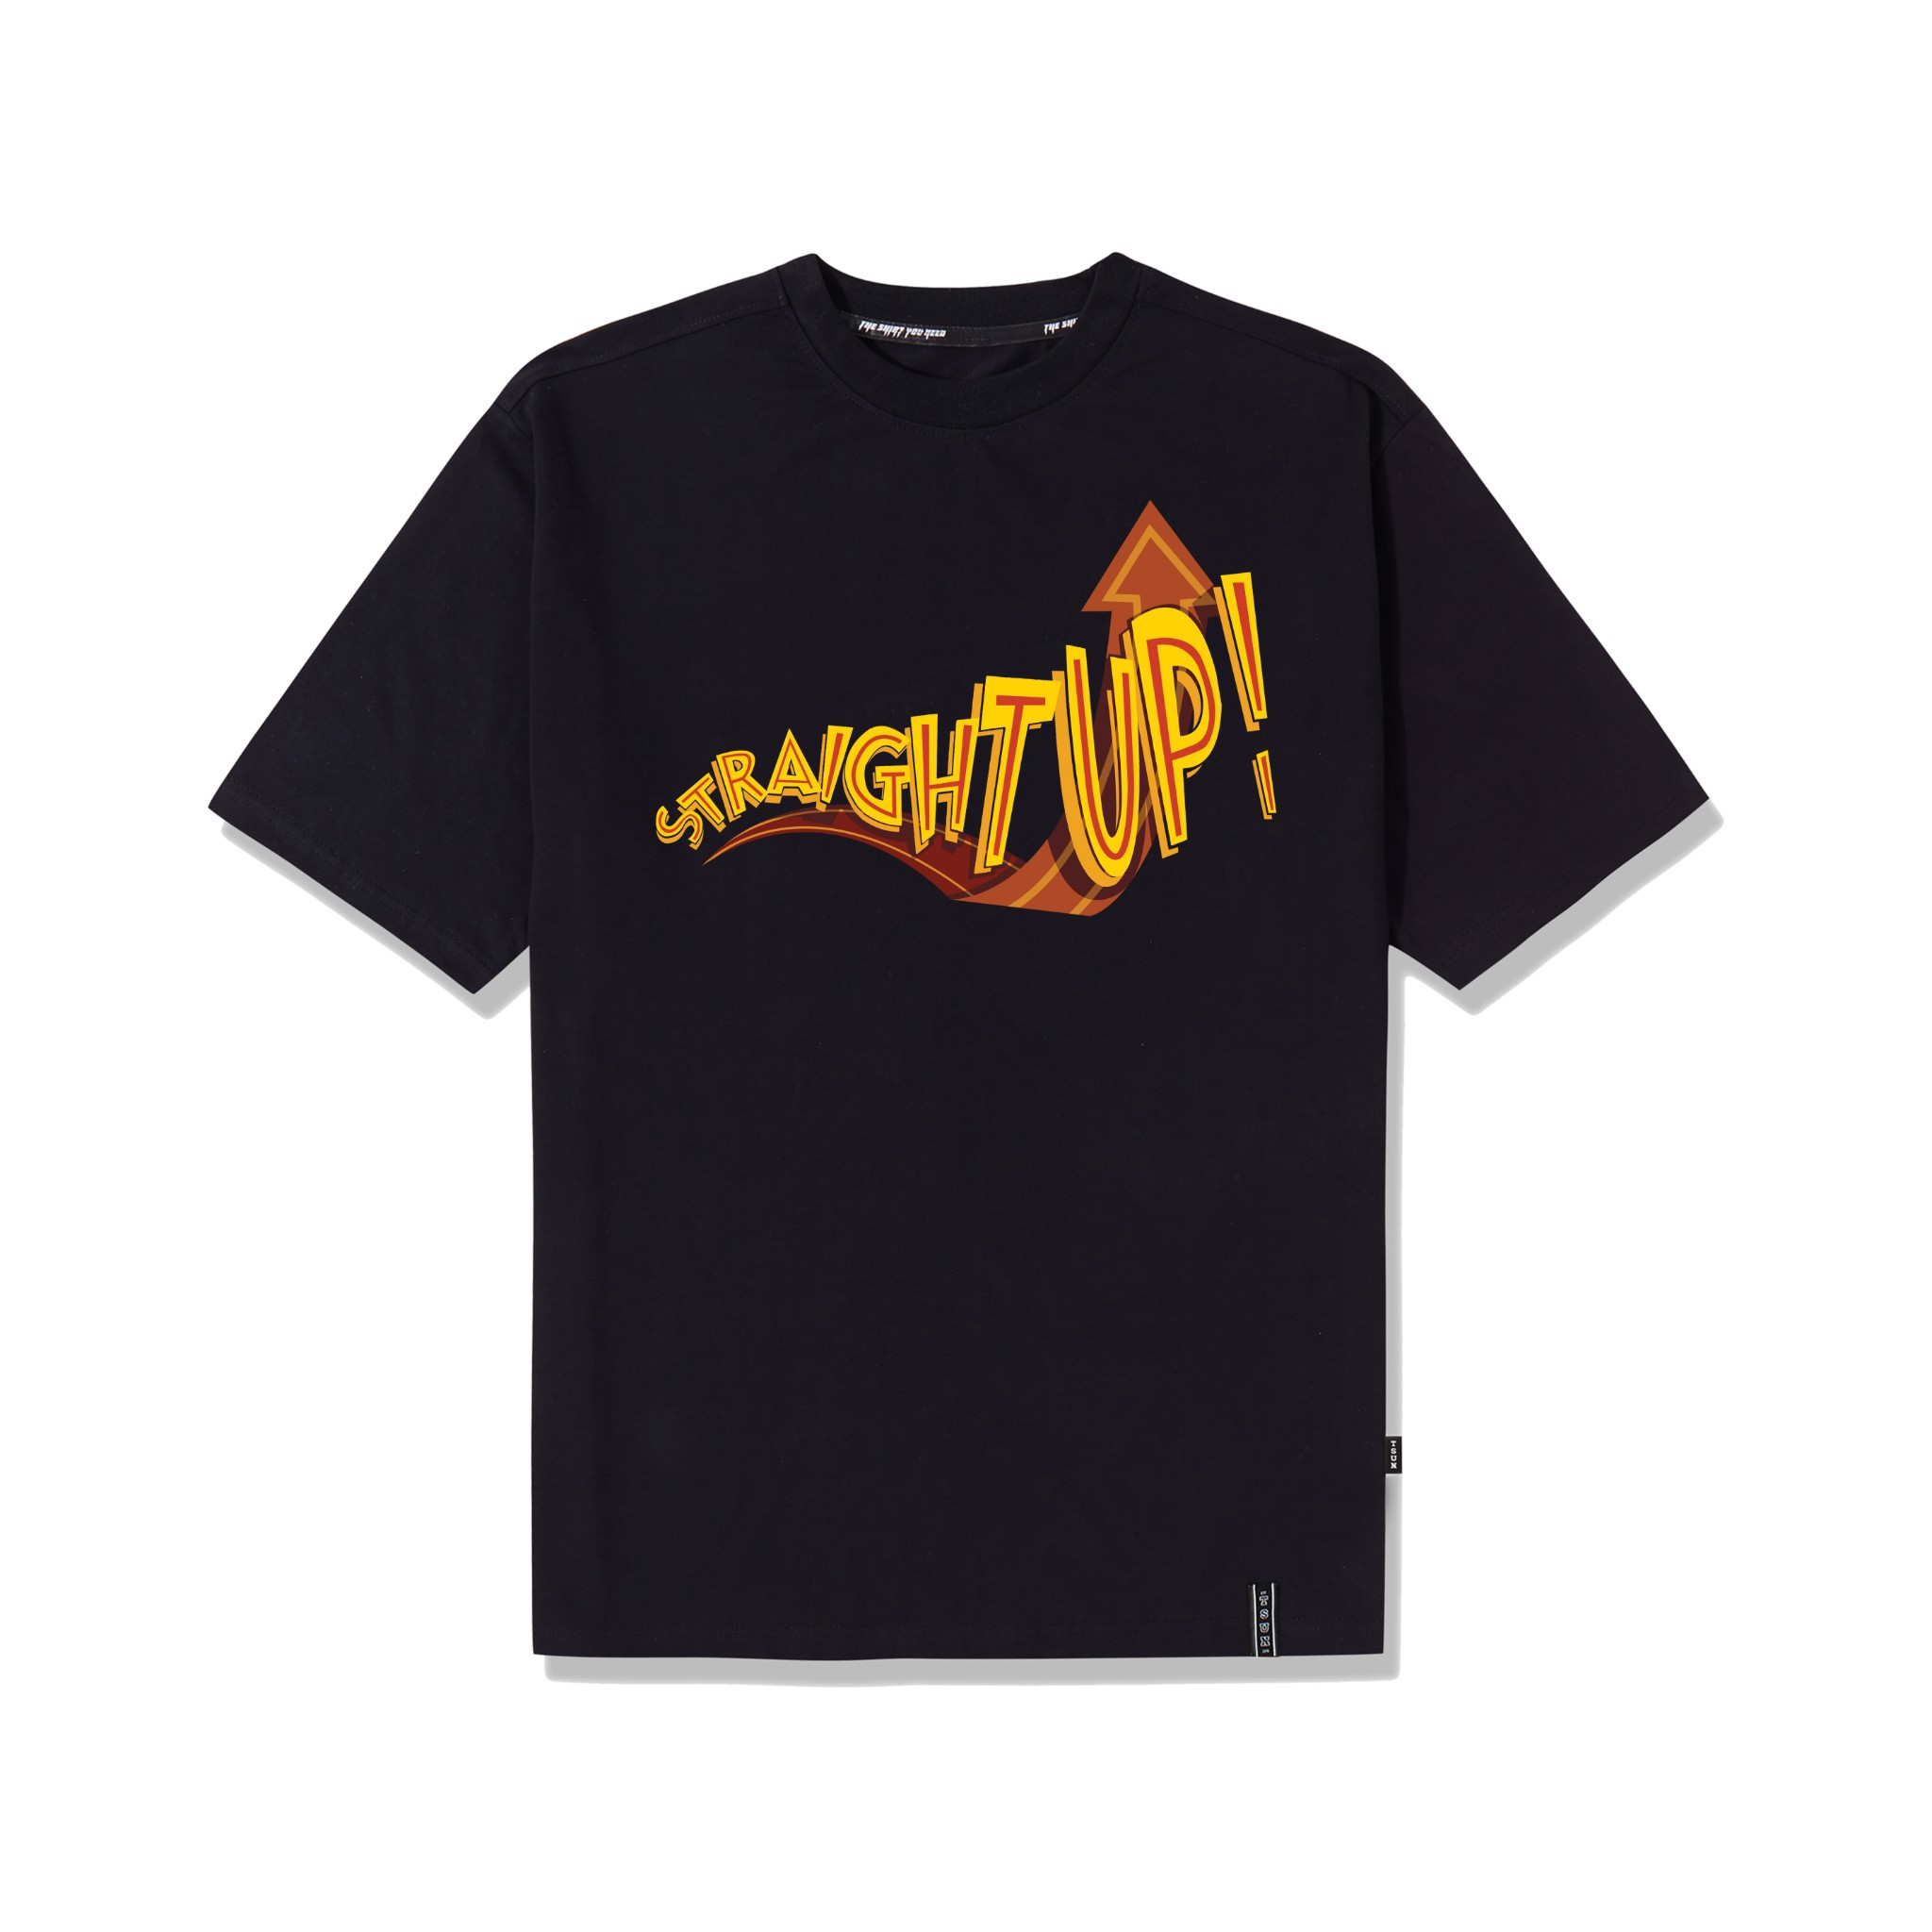 Straight Up Tee/Black